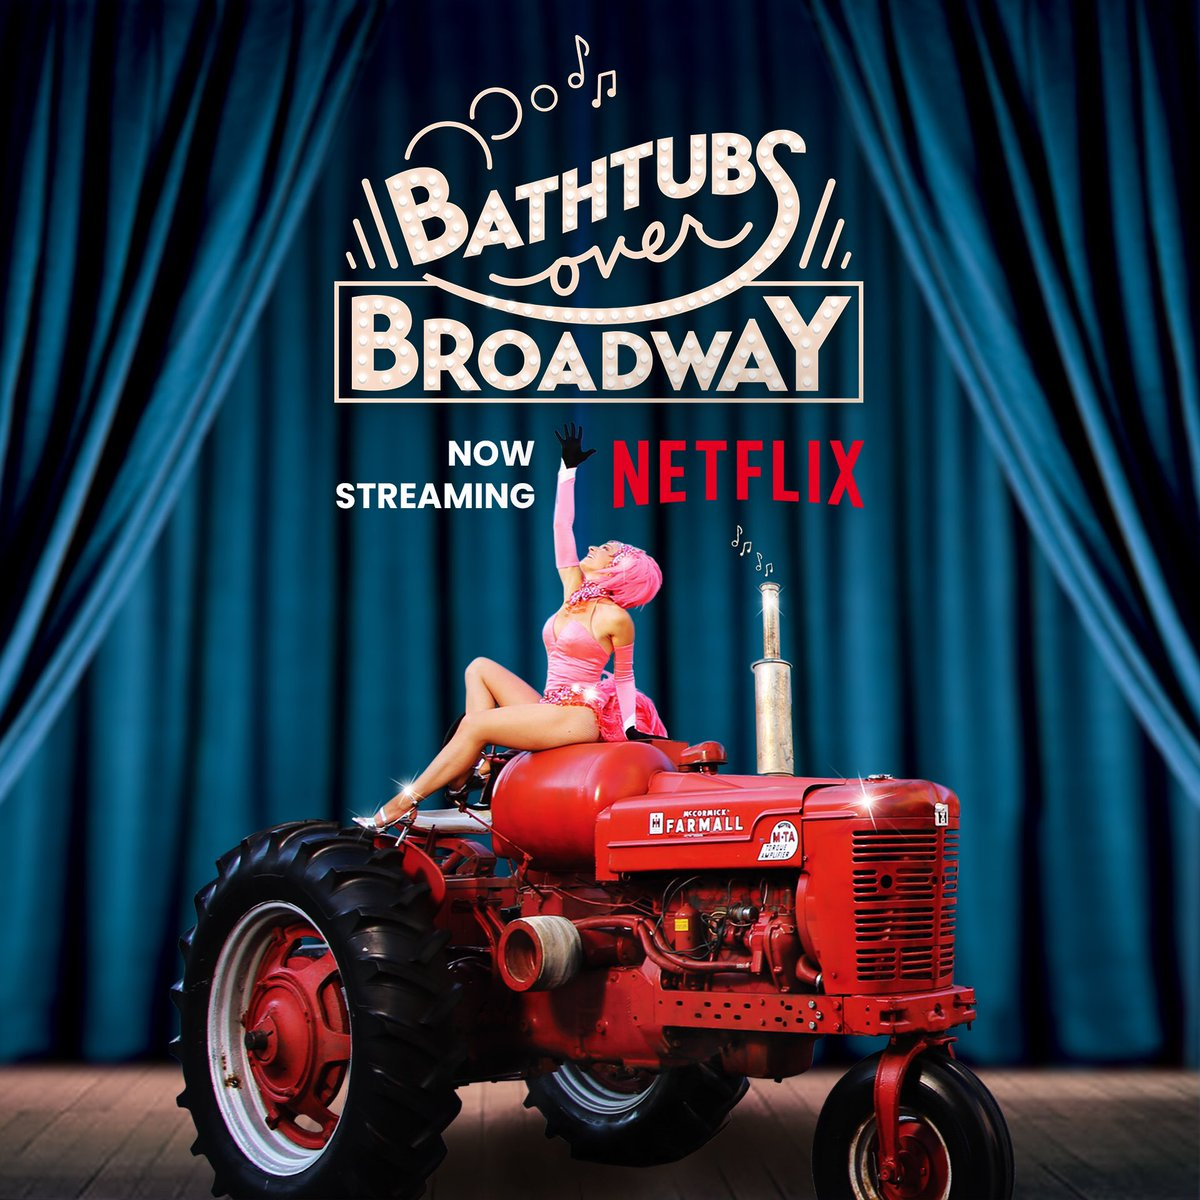 NOW ON @netflix! Join @Letterman writer @PANTSSteve as he delves into a hidden and hilarious musical world in the award-winning, feel-good documentary @BathtubsOverBwy!